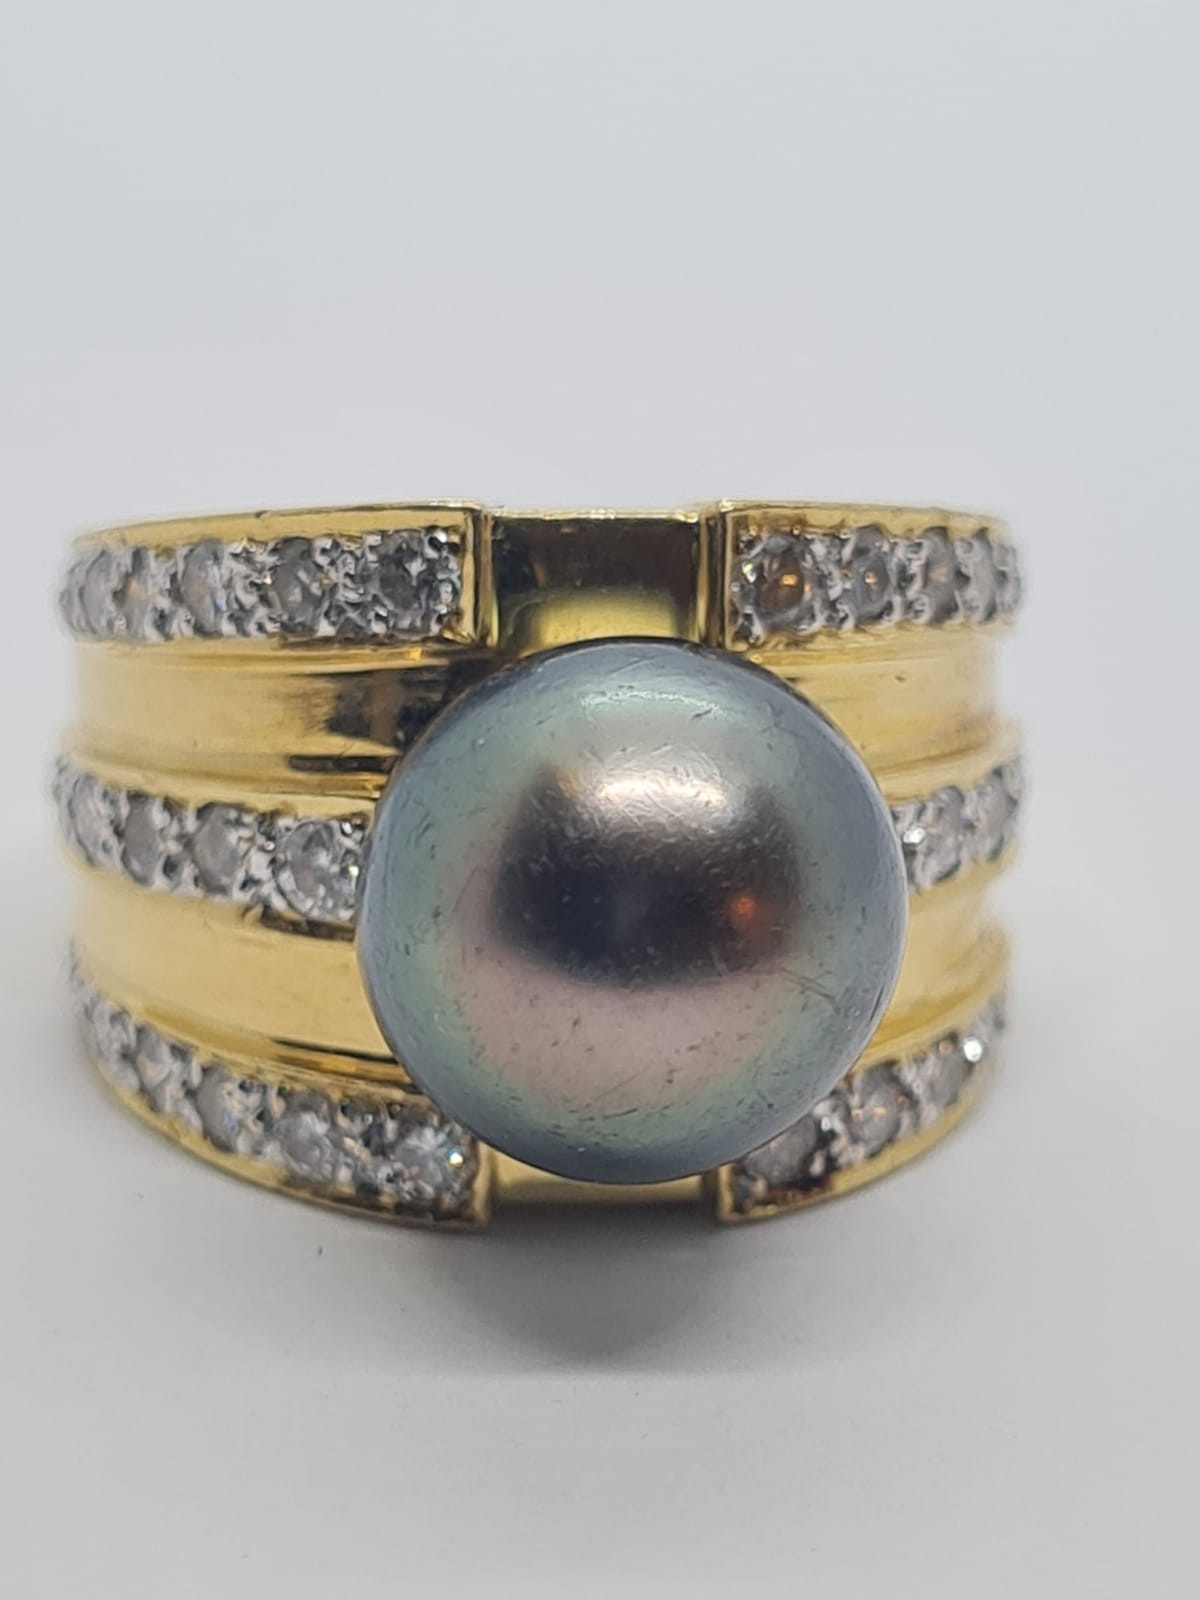 18k yellow gold with Tahitian pearl centre and decorated with 1.50ct diamonds approx, weight 12.8g - Image 7 of 9